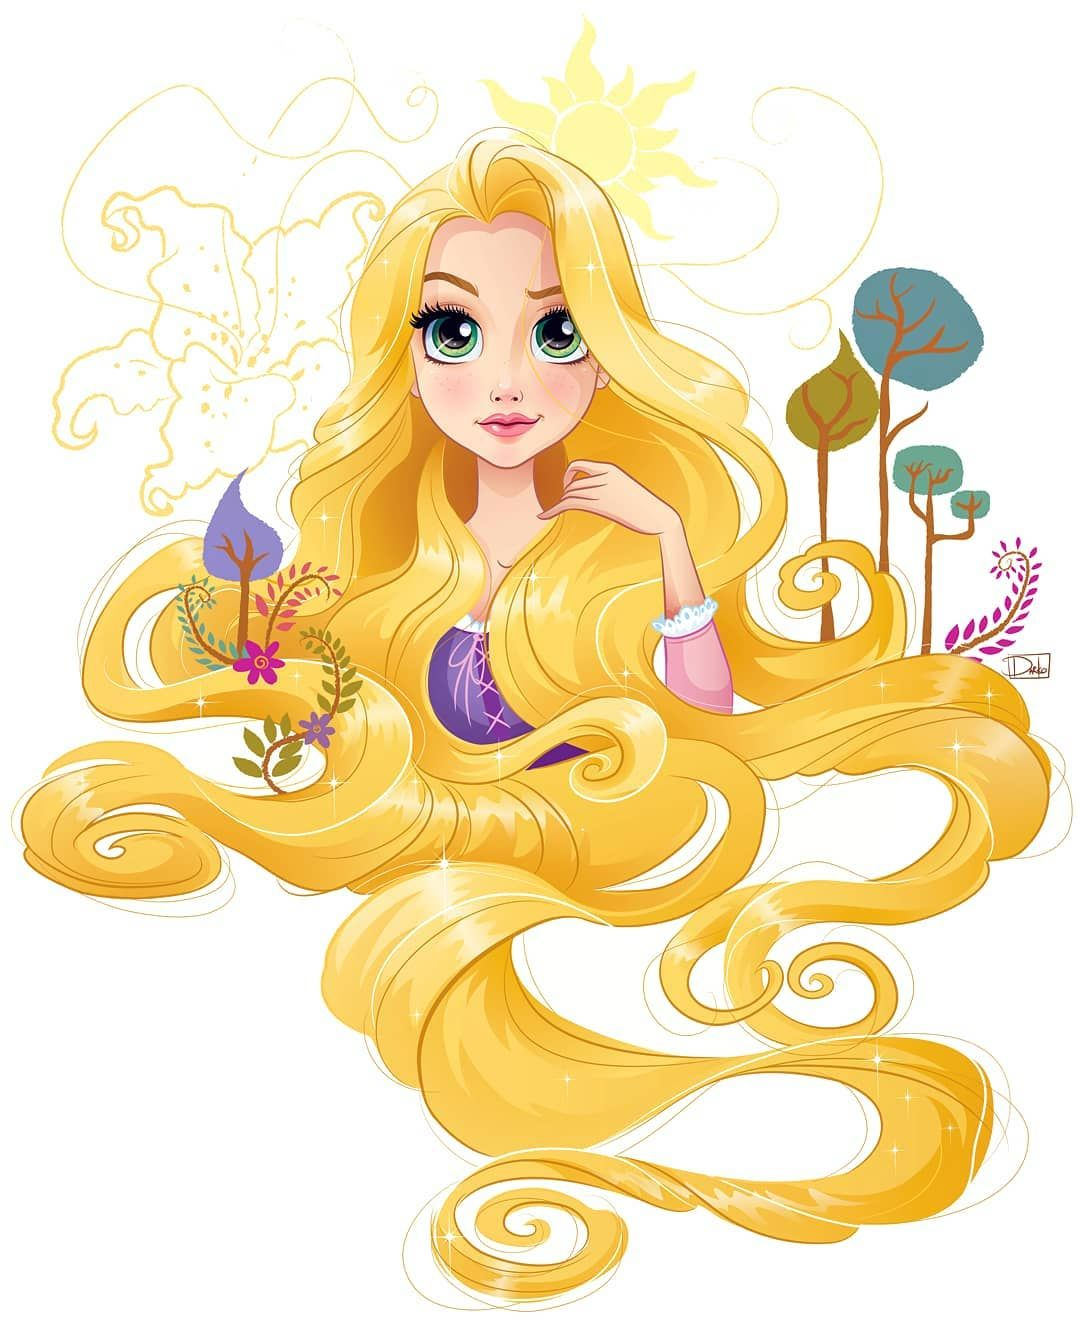 """Darko Dordevic on Instagram: """"Happy anniversary 24th November 2010 #Tangled #rapunzel ☀️👑💖 One of my official artworks I did for @thedisneyprincesses ❤👑❤@disney…"""""""